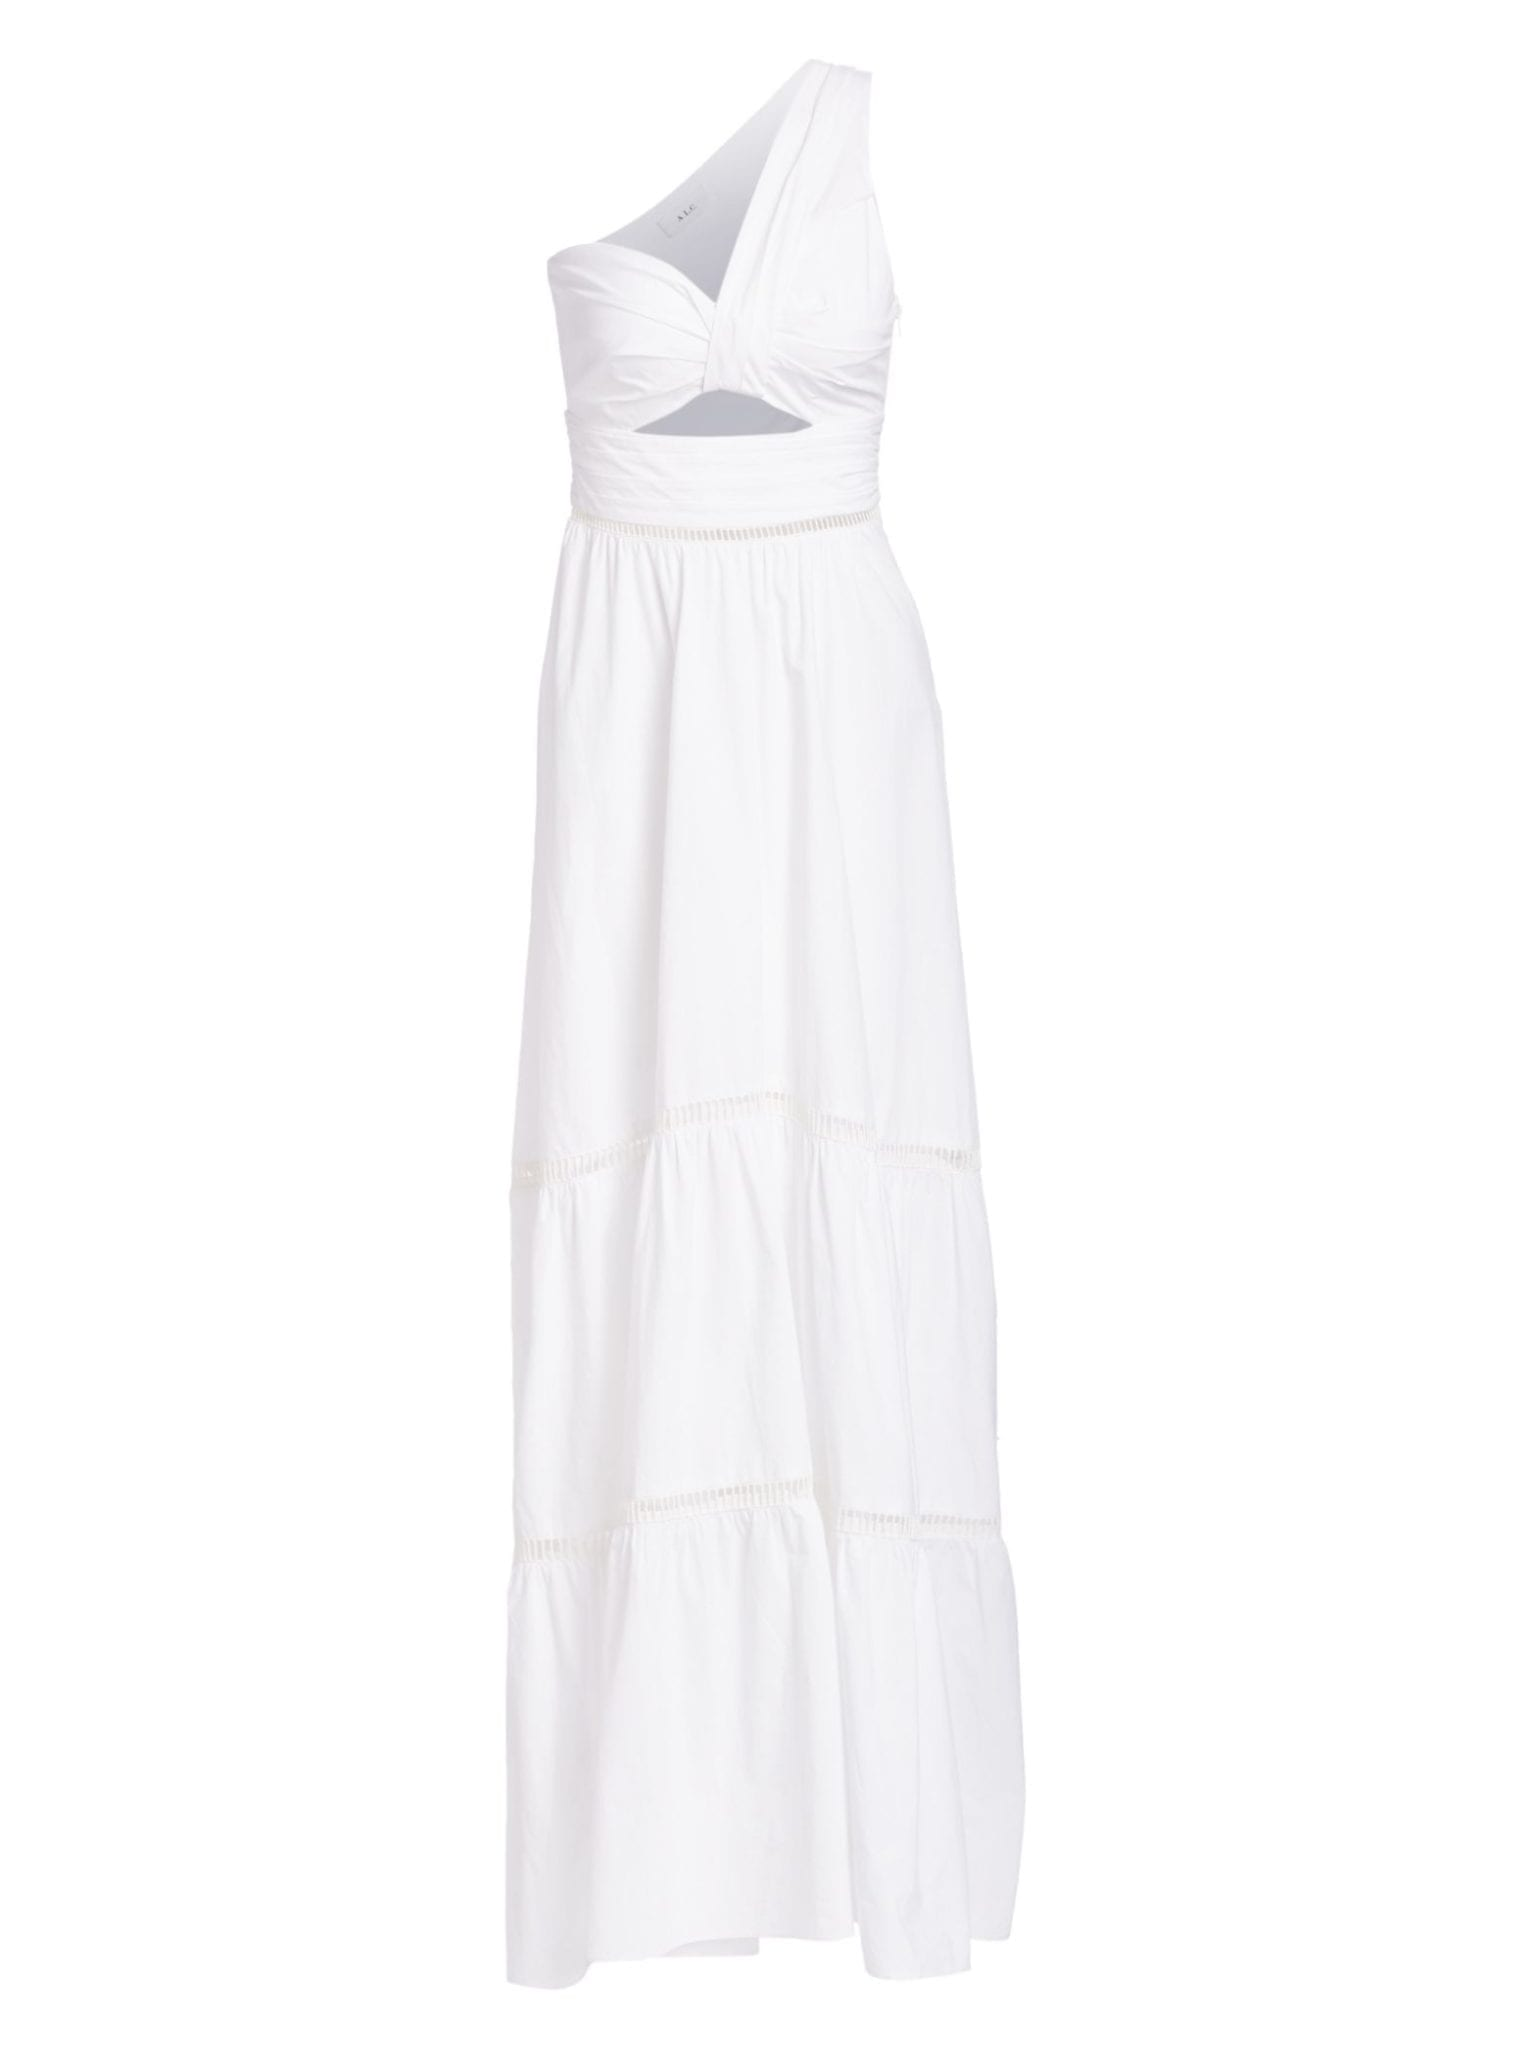 A.L.C. Piper Cotton One-Shoulder White Dress